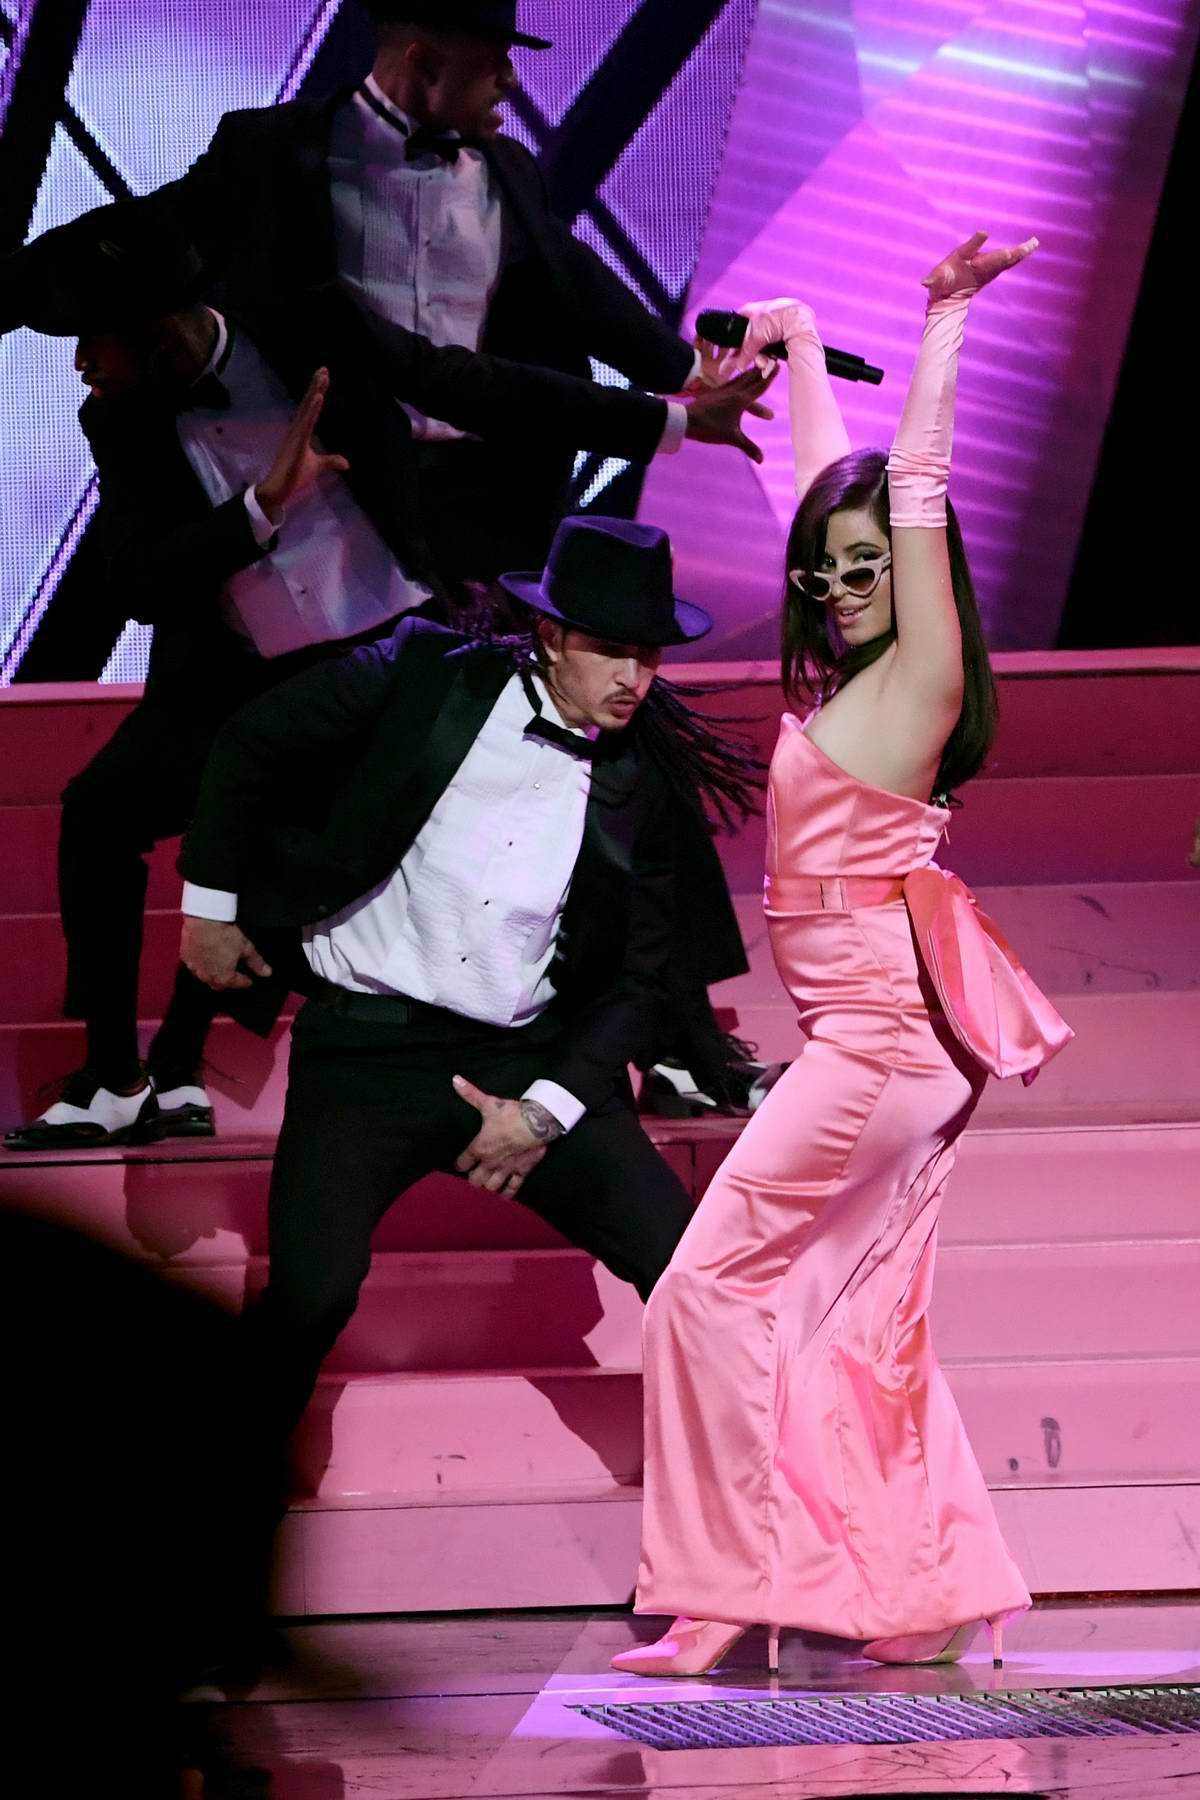 Camila Cabello performs at the 2018 iHeartRadio Music Awards at The Forum in Inglewood, California